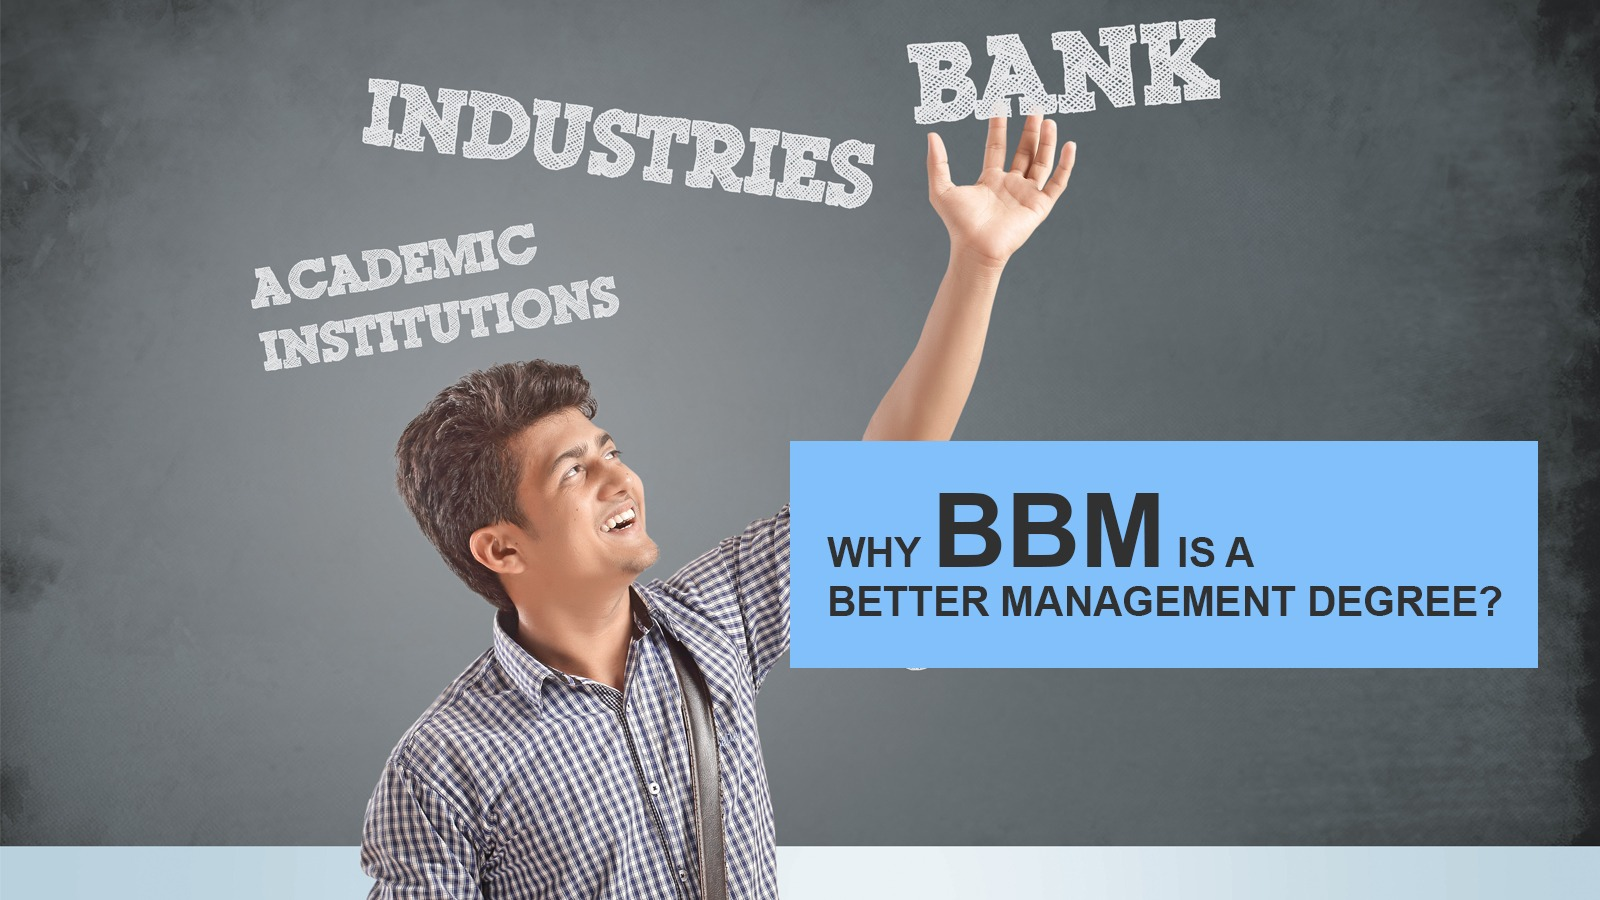 Why BBM is a better Management degree?